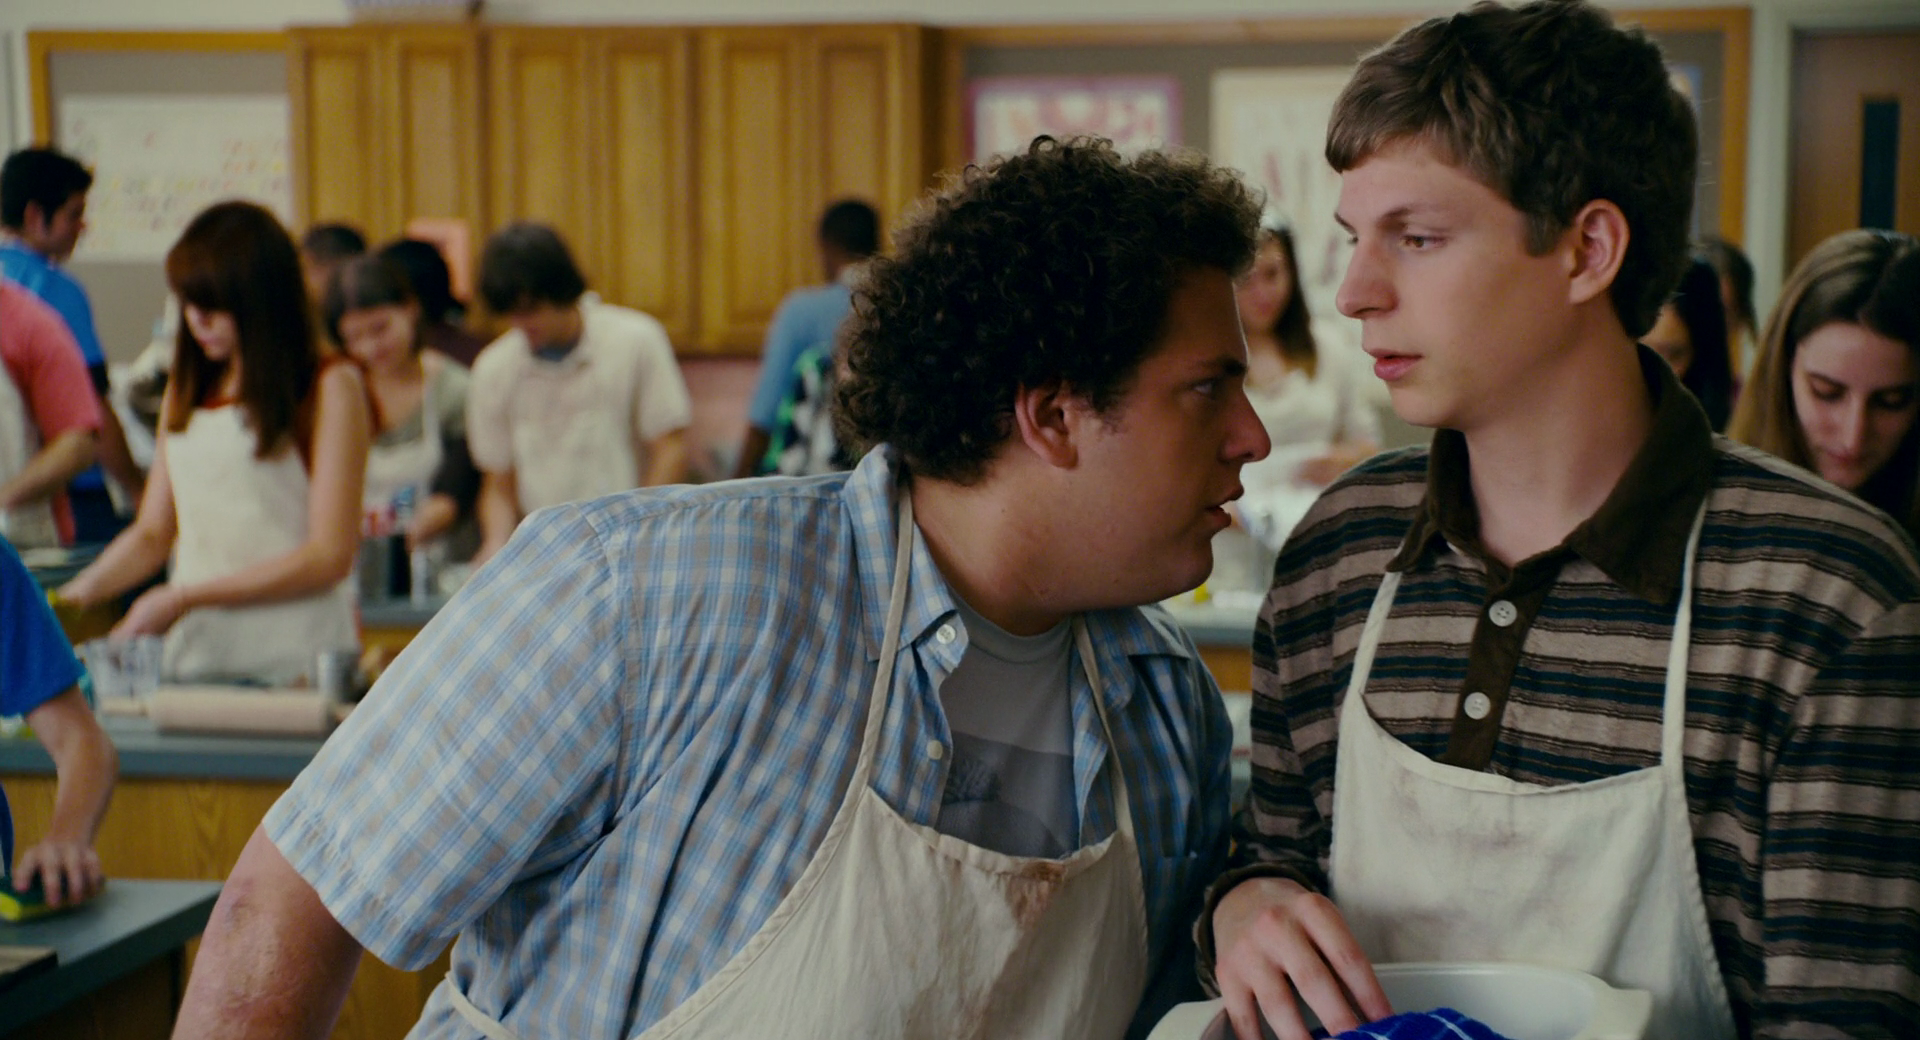 Superbad facts